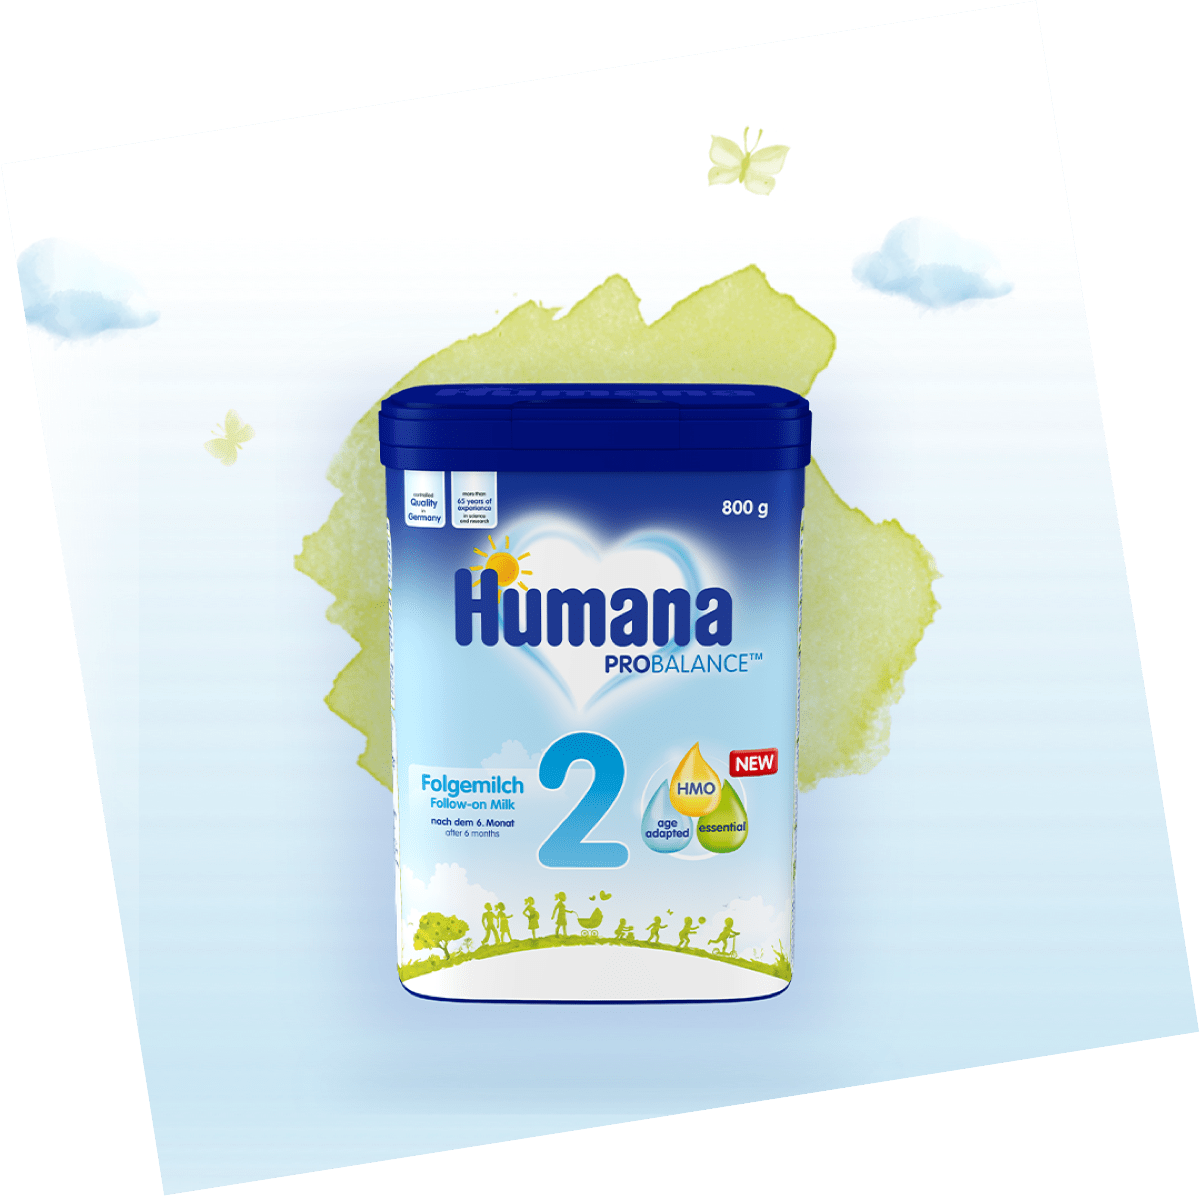 hover-image for the client humana highlighting a packaging design from humana